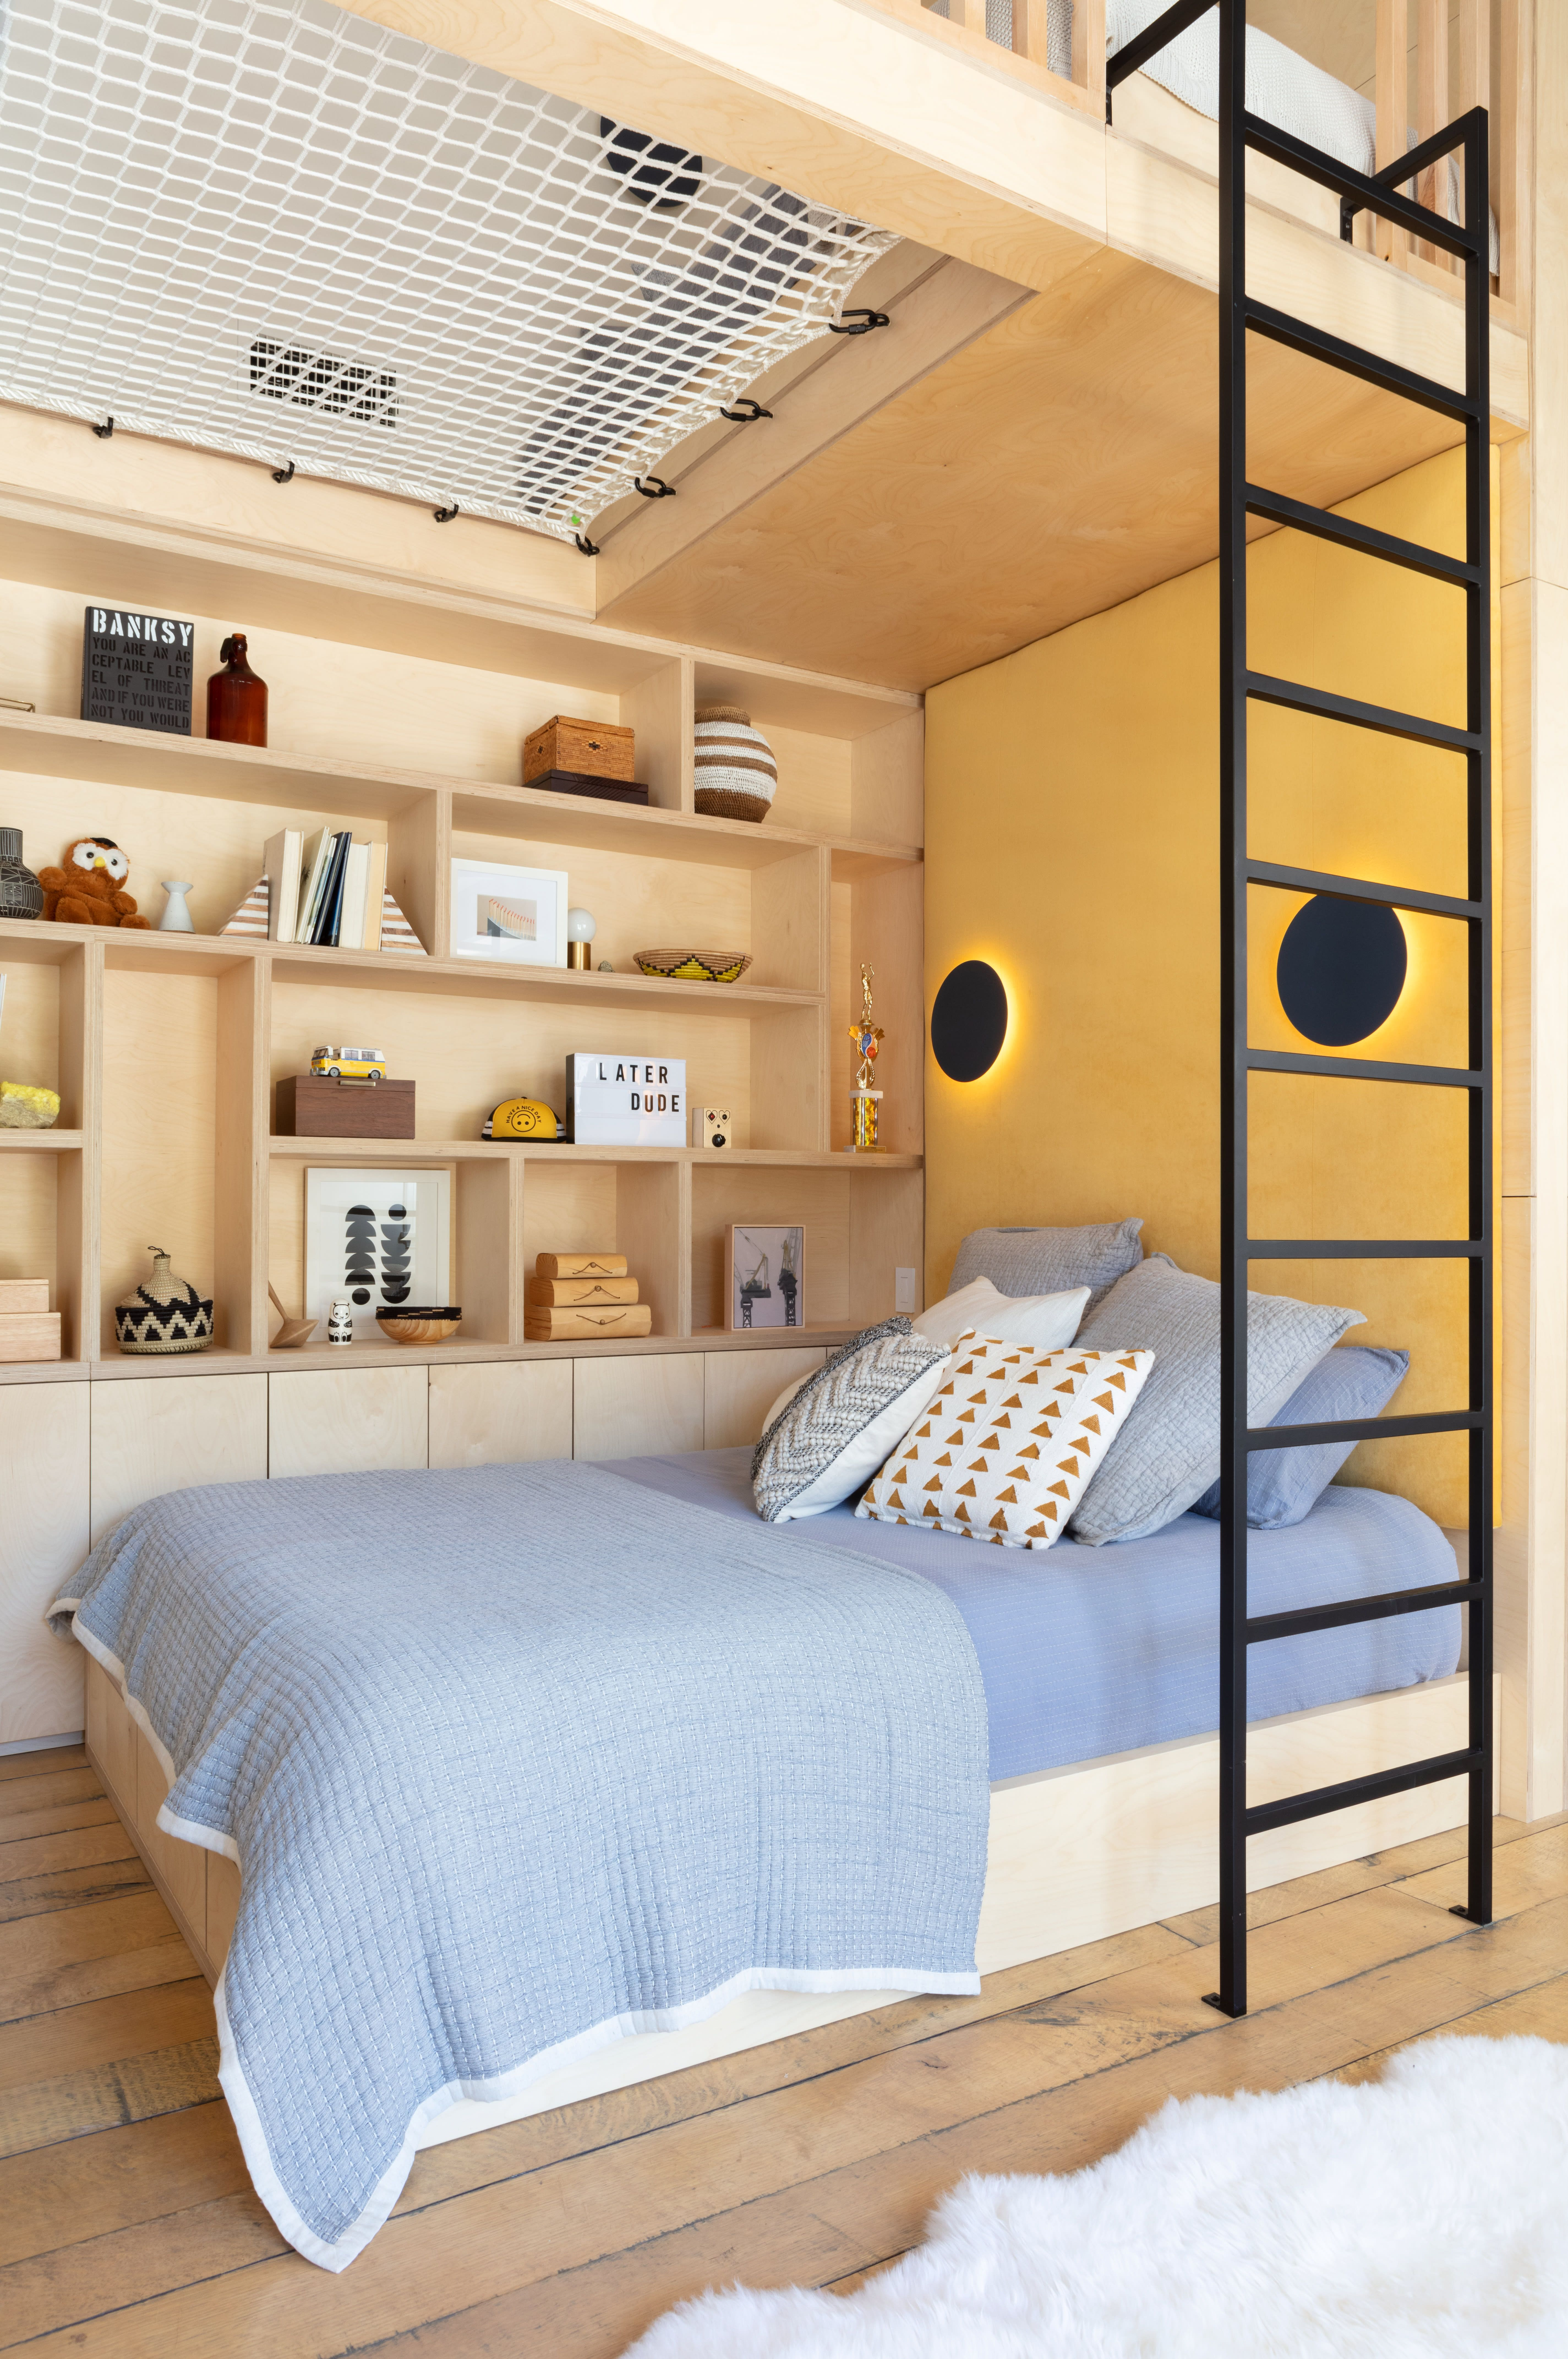 3 Kids Bedroom Ideas We Learned From This Playful L A Home 3